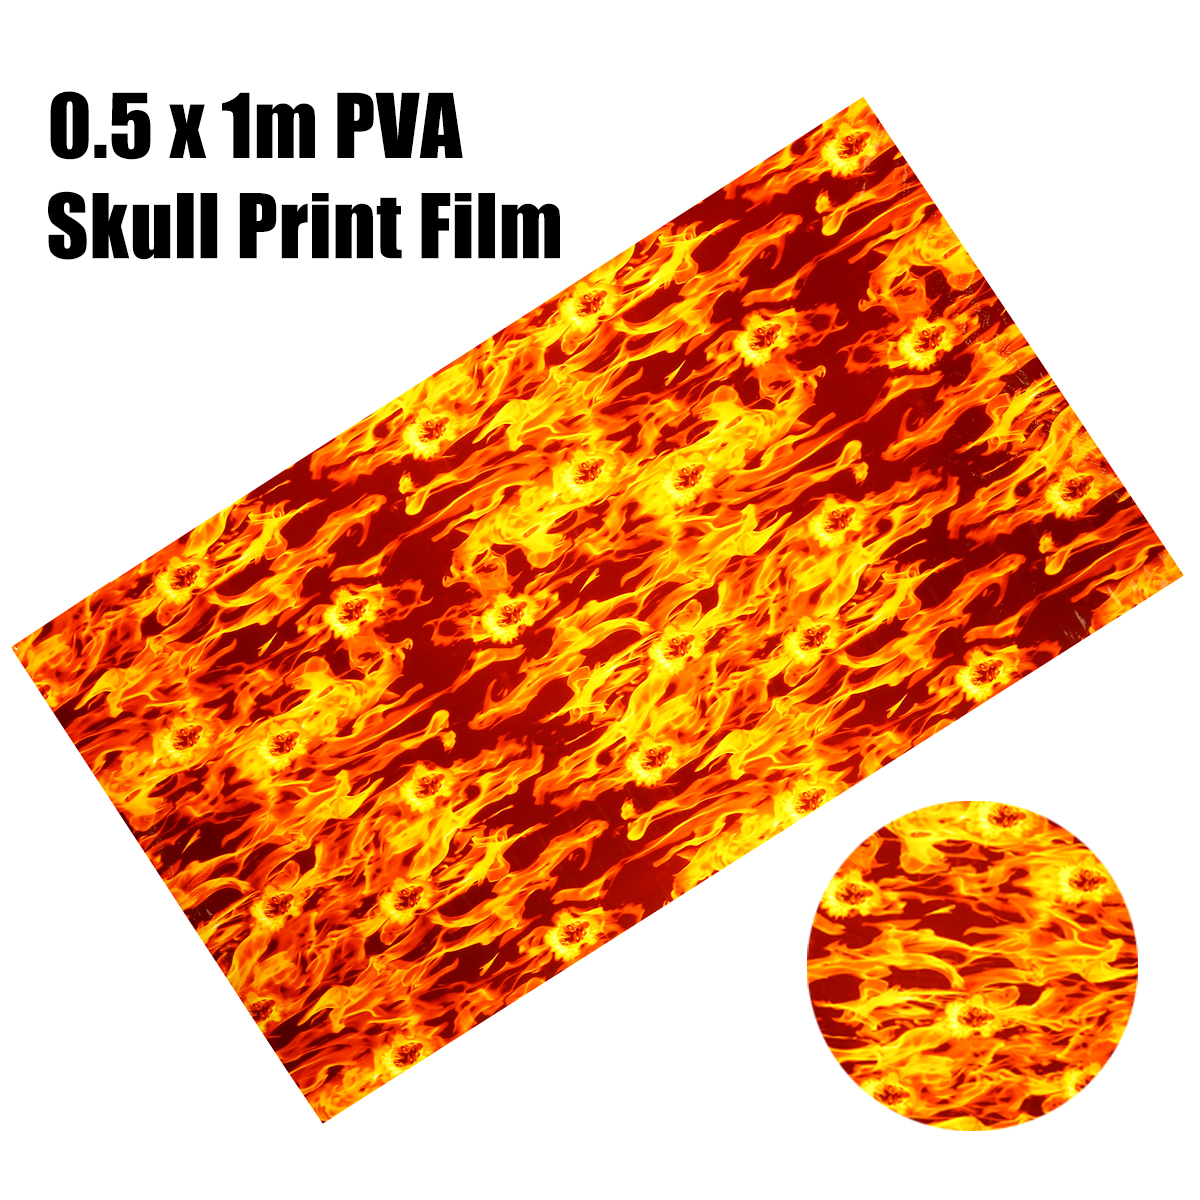 100cm X 50cm Hydrographics Water Transfer Printing Flaming Film for Household Window Decor PVA Dipping Flame Skulls Print Film